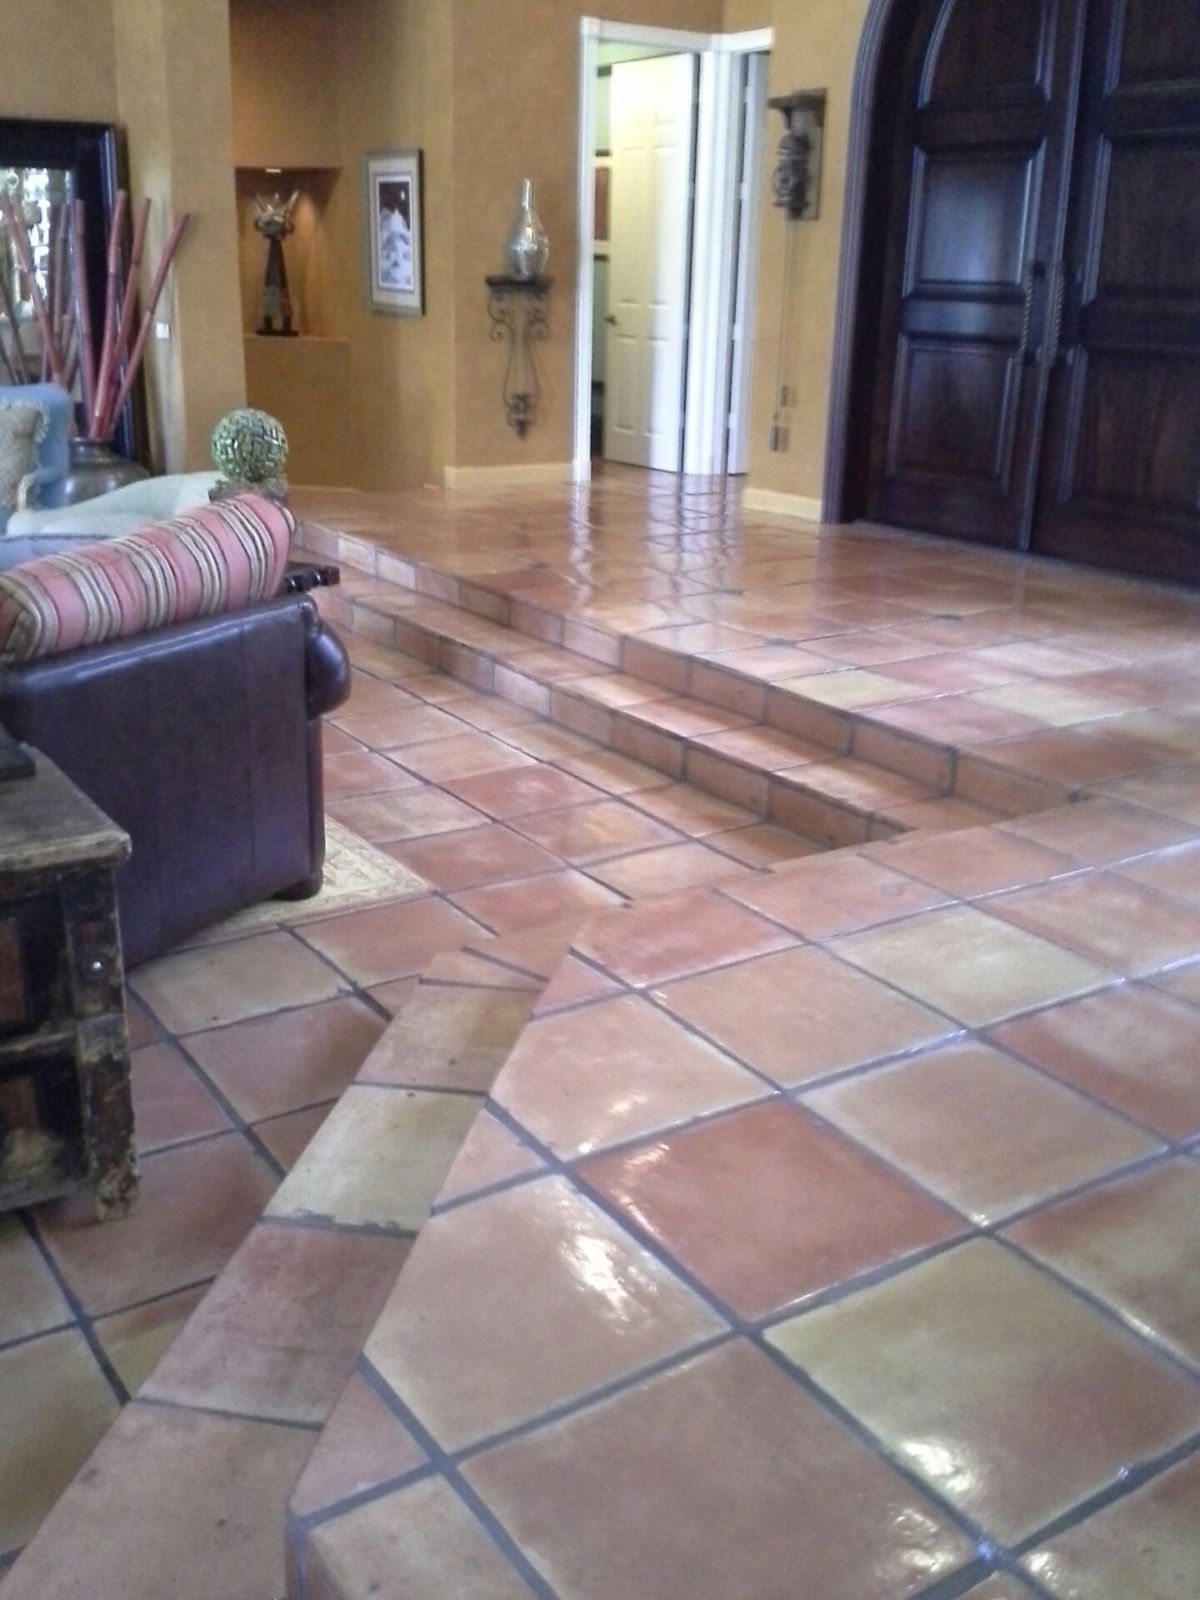 Tile installation south florida flooring contractor installation tile installation and remodeling contractor 011 dailygadgetfo Choice Image